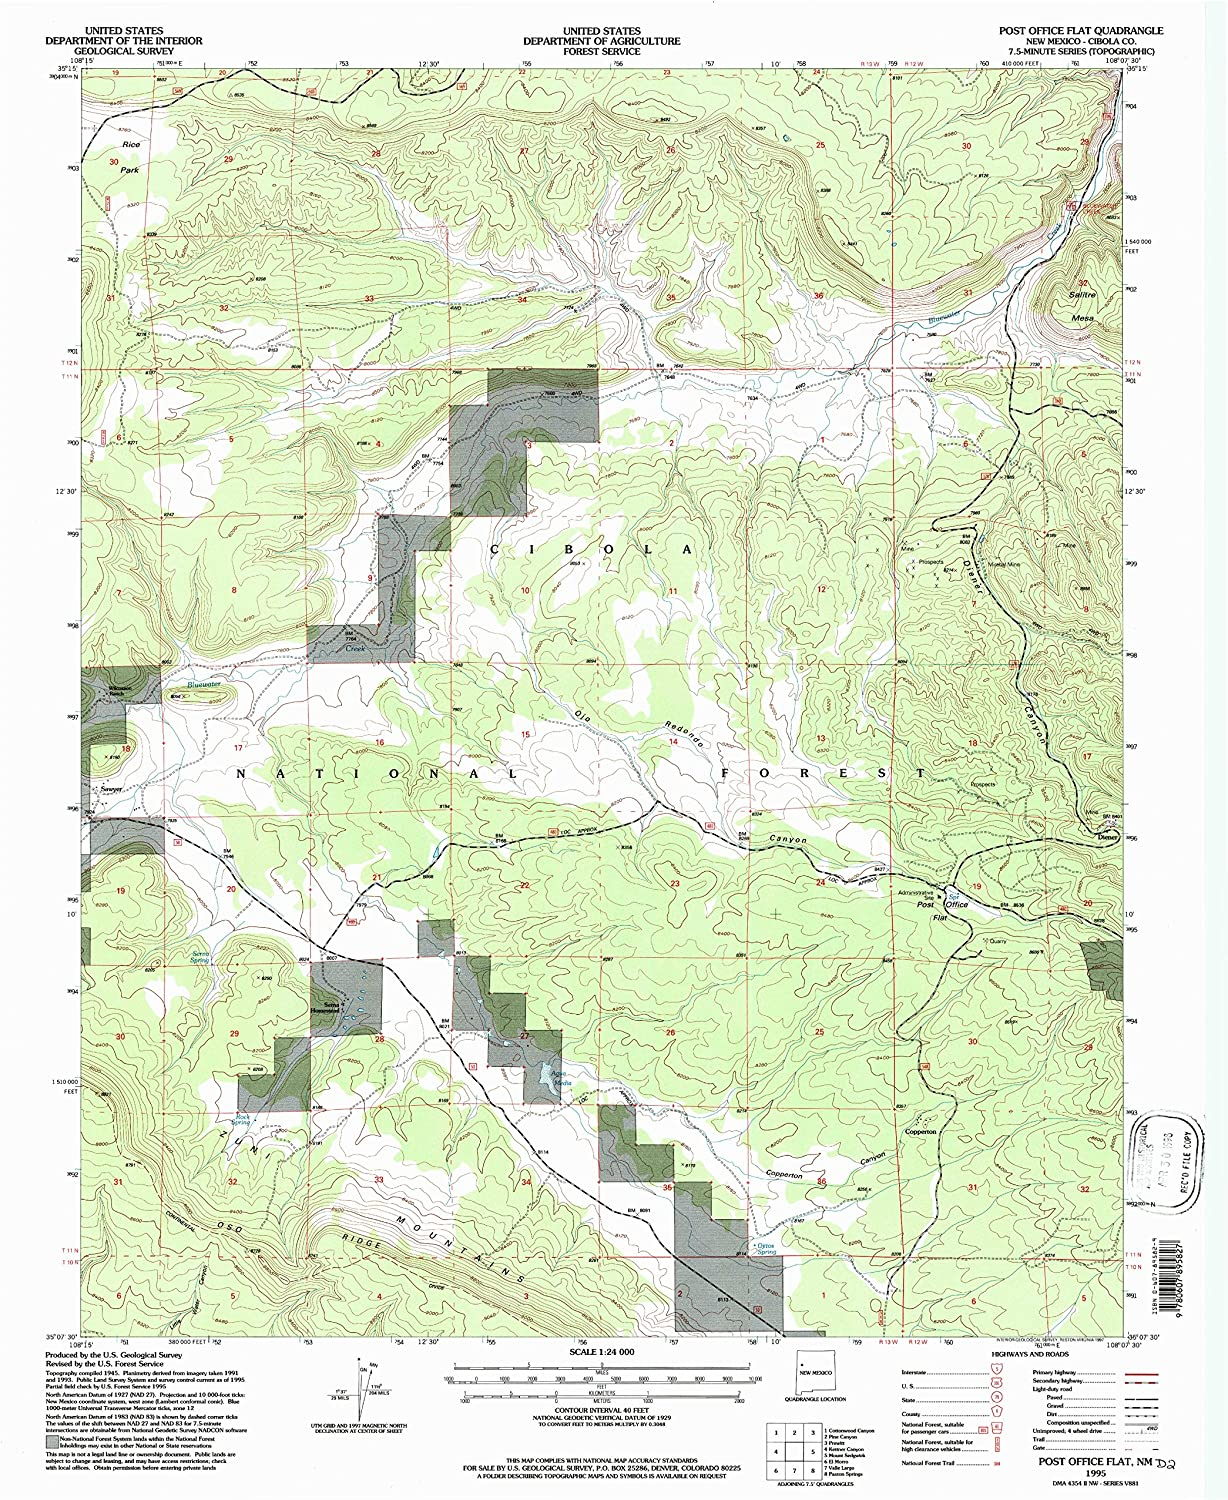 Post Office Flat NM topo map, 1 24000 Scale, 7.5 X 7.5 Minute, Historical, 1995, Updated 1997, 26.9 x 22 in